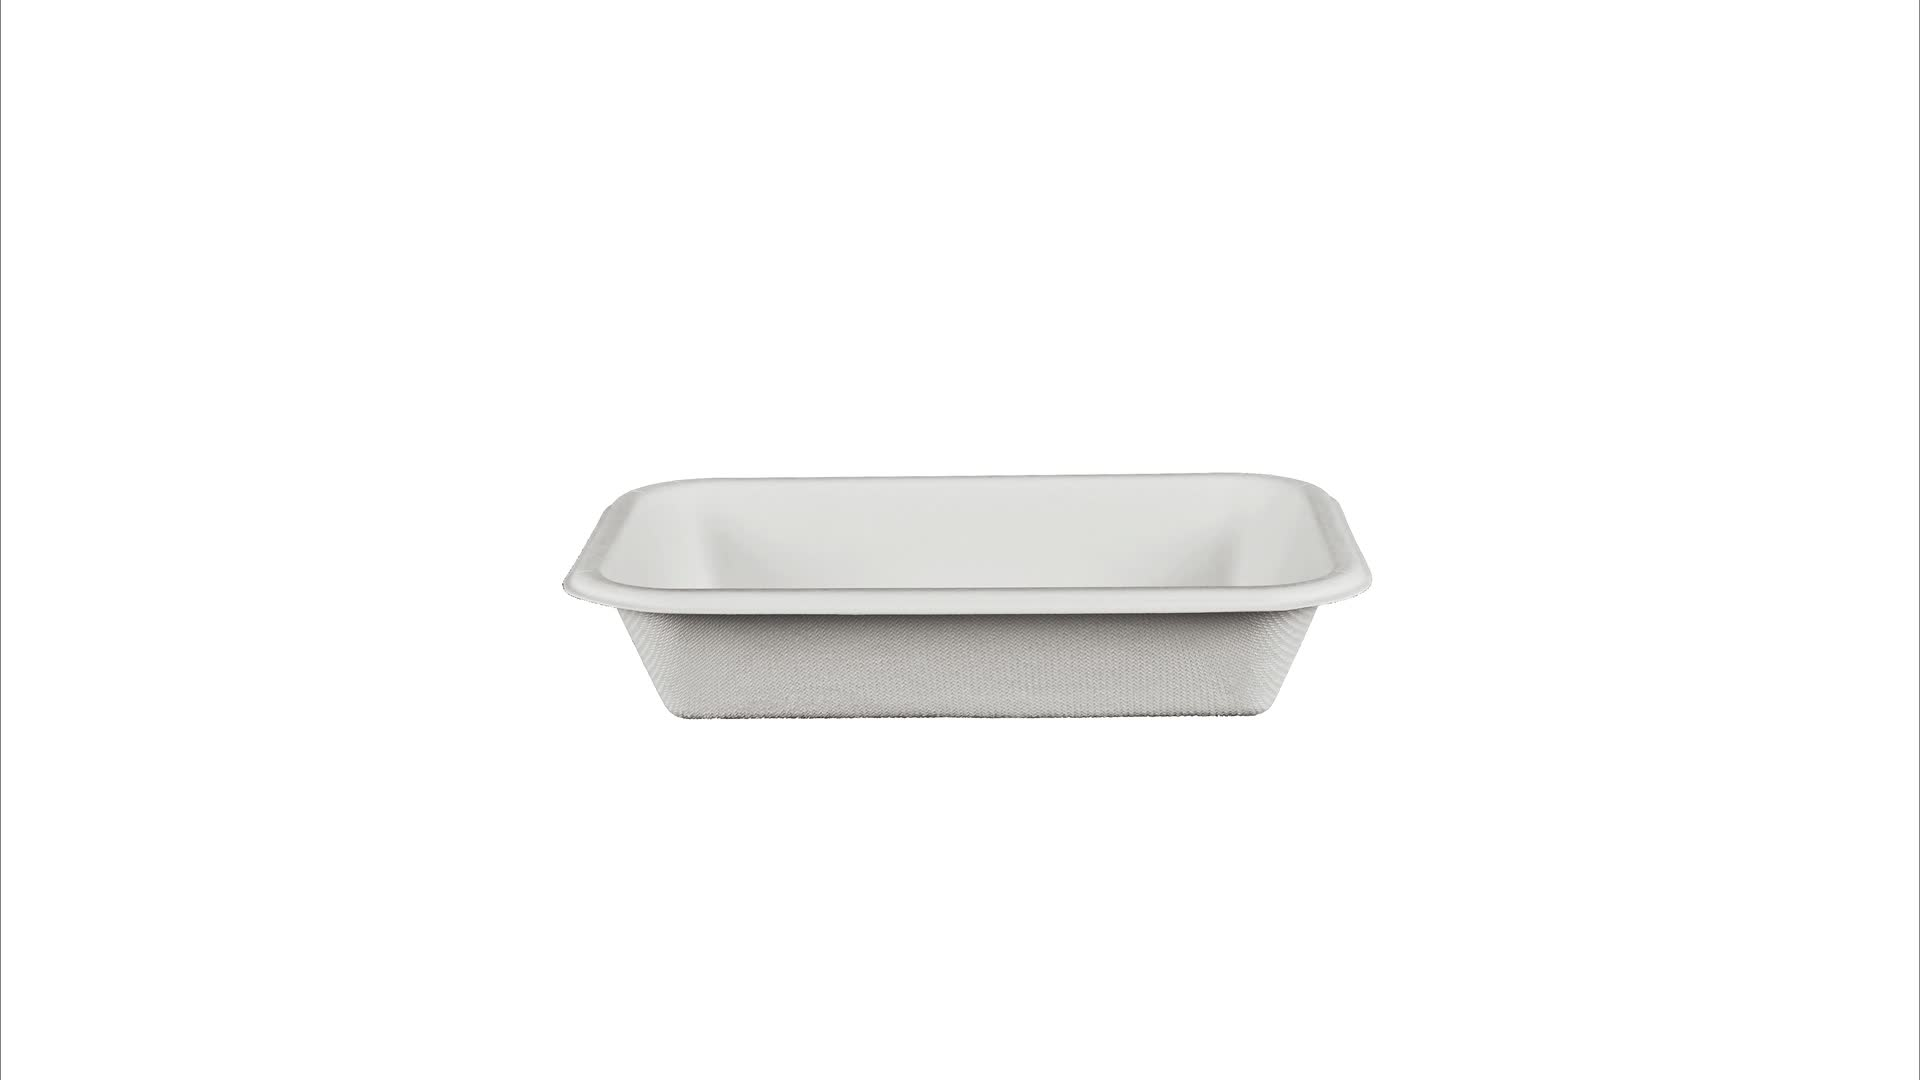 16oz Tray Biodegradable Sugarcane Meat Trays,Recyclable Packaging Paper Fruit Lunch Trays